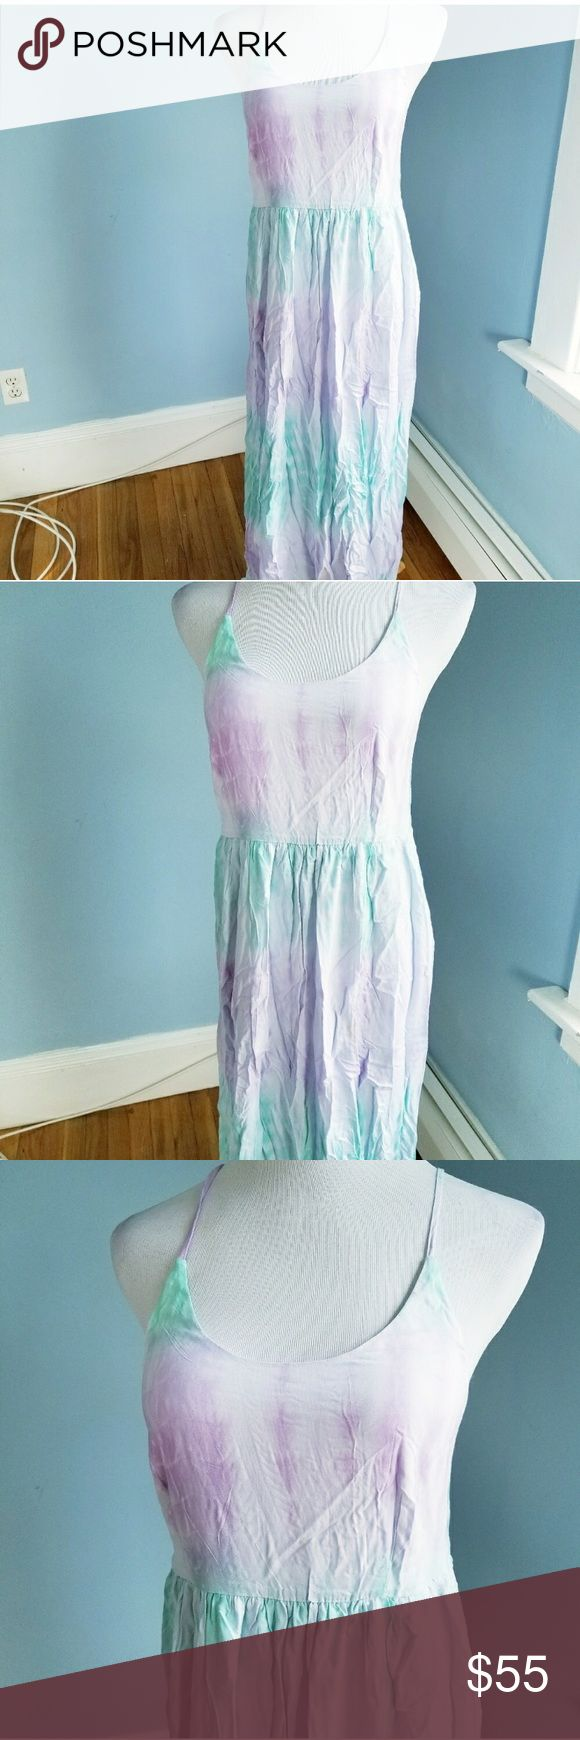 Lilac and mint maxi dress 100% rayon   Lilac and mint tie dye color with lining from chest to mid thigh, scooped neckline and spaghetti straps   Small(4-6) Dresses Maxi